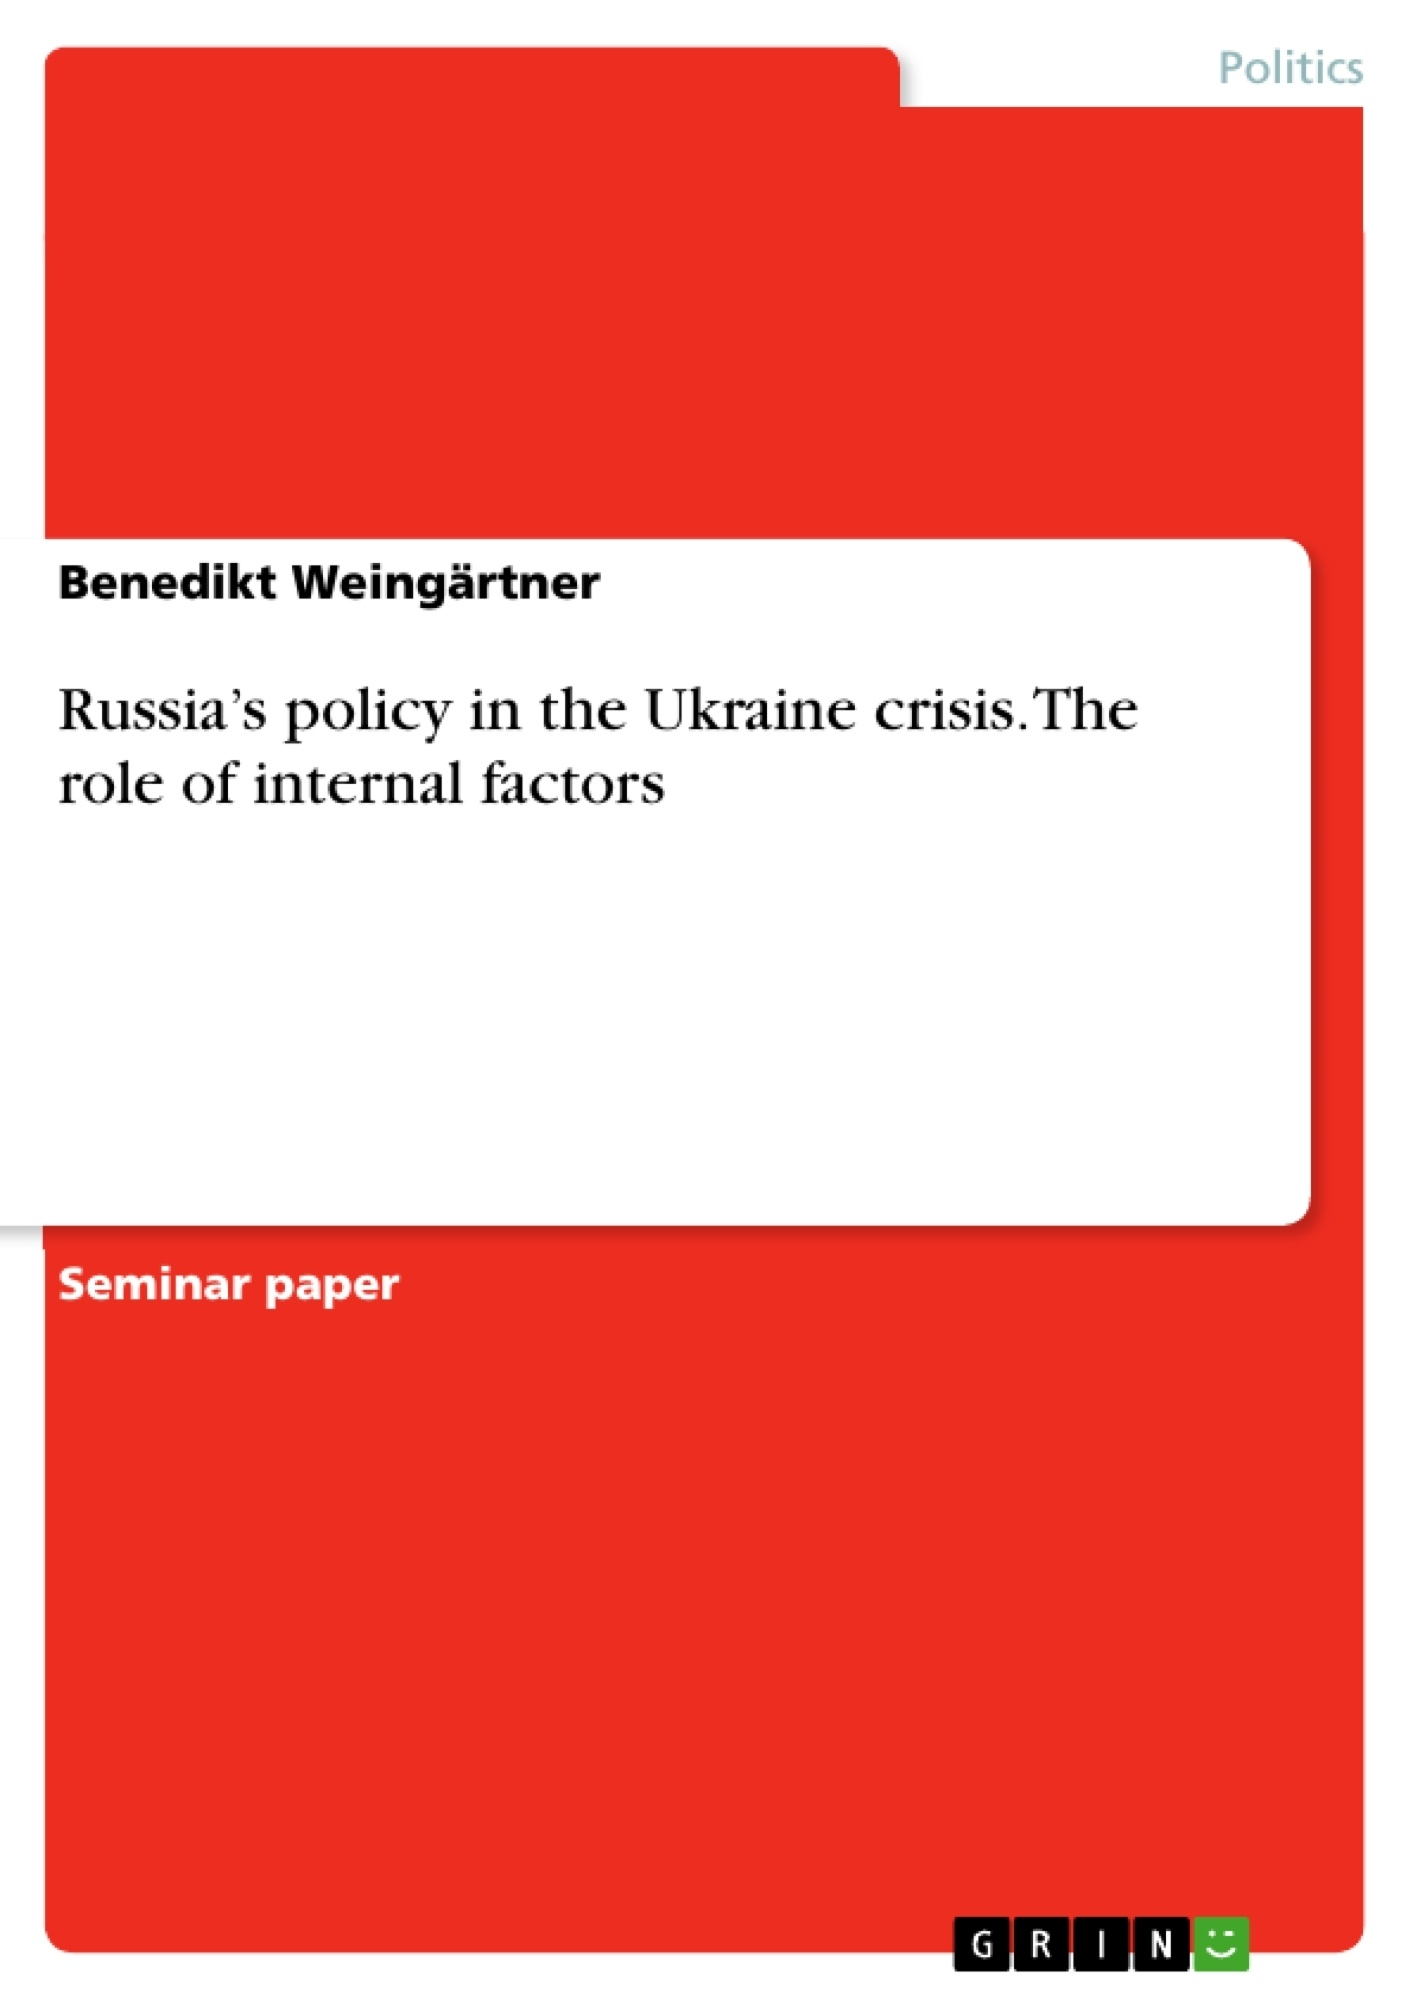 Title: Russia's policy in the Ukraine crisis. The role of internal factors